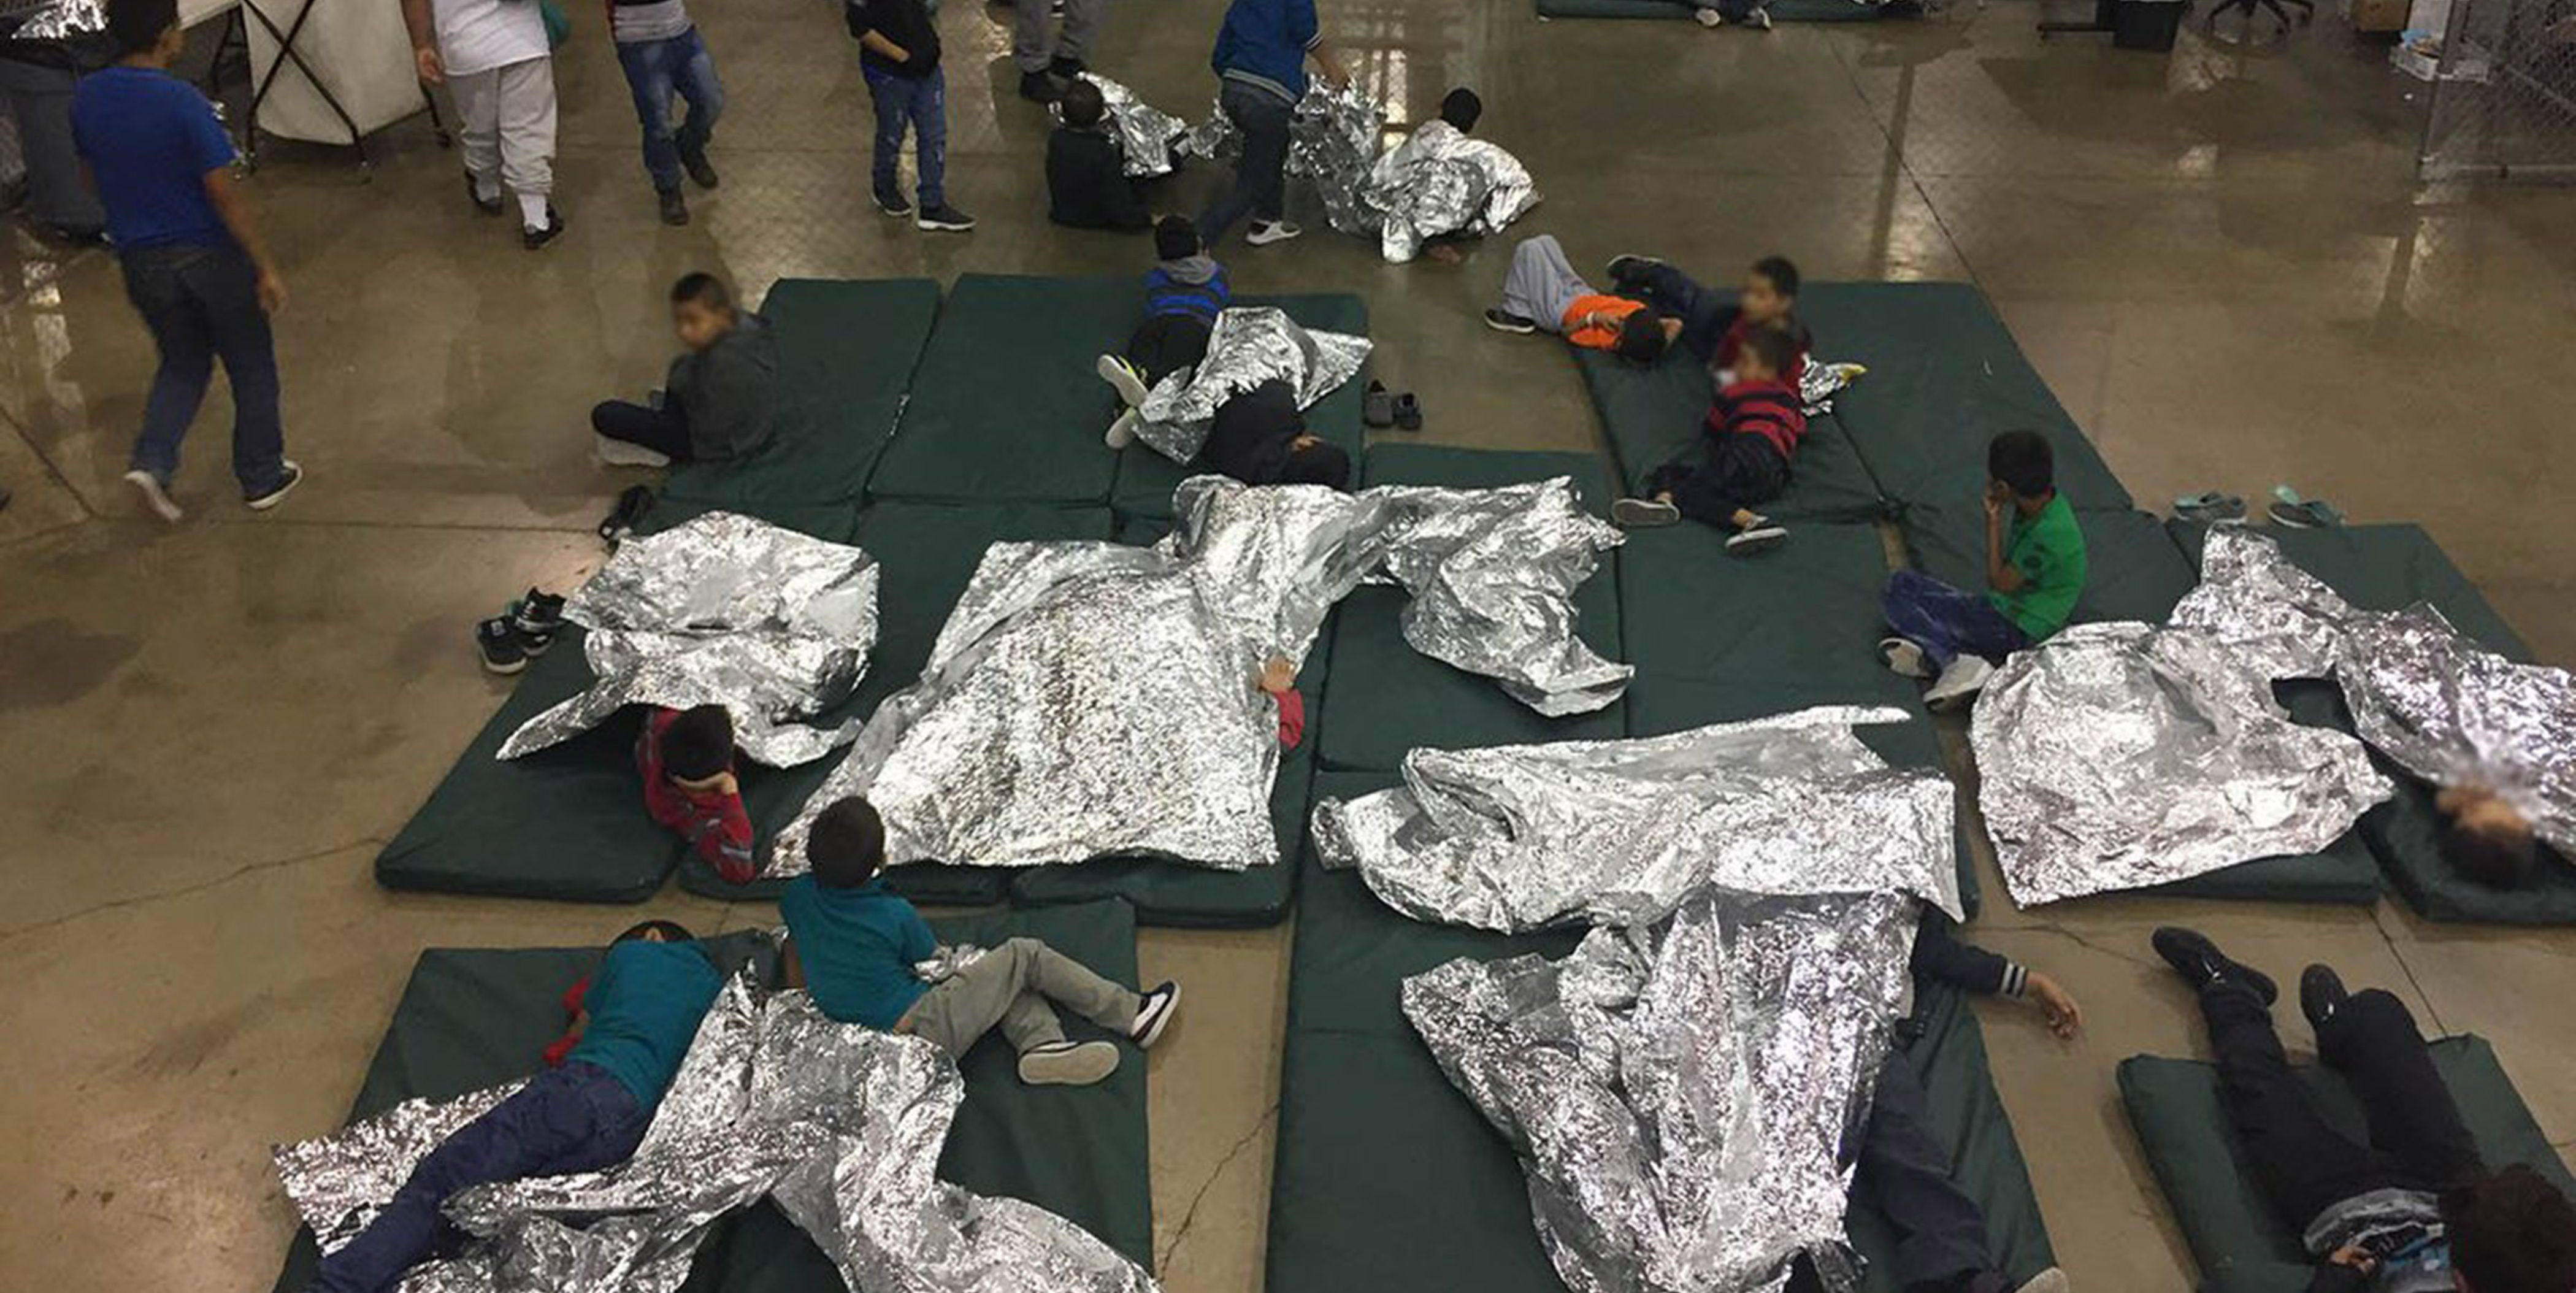 Children detained at border detention facility